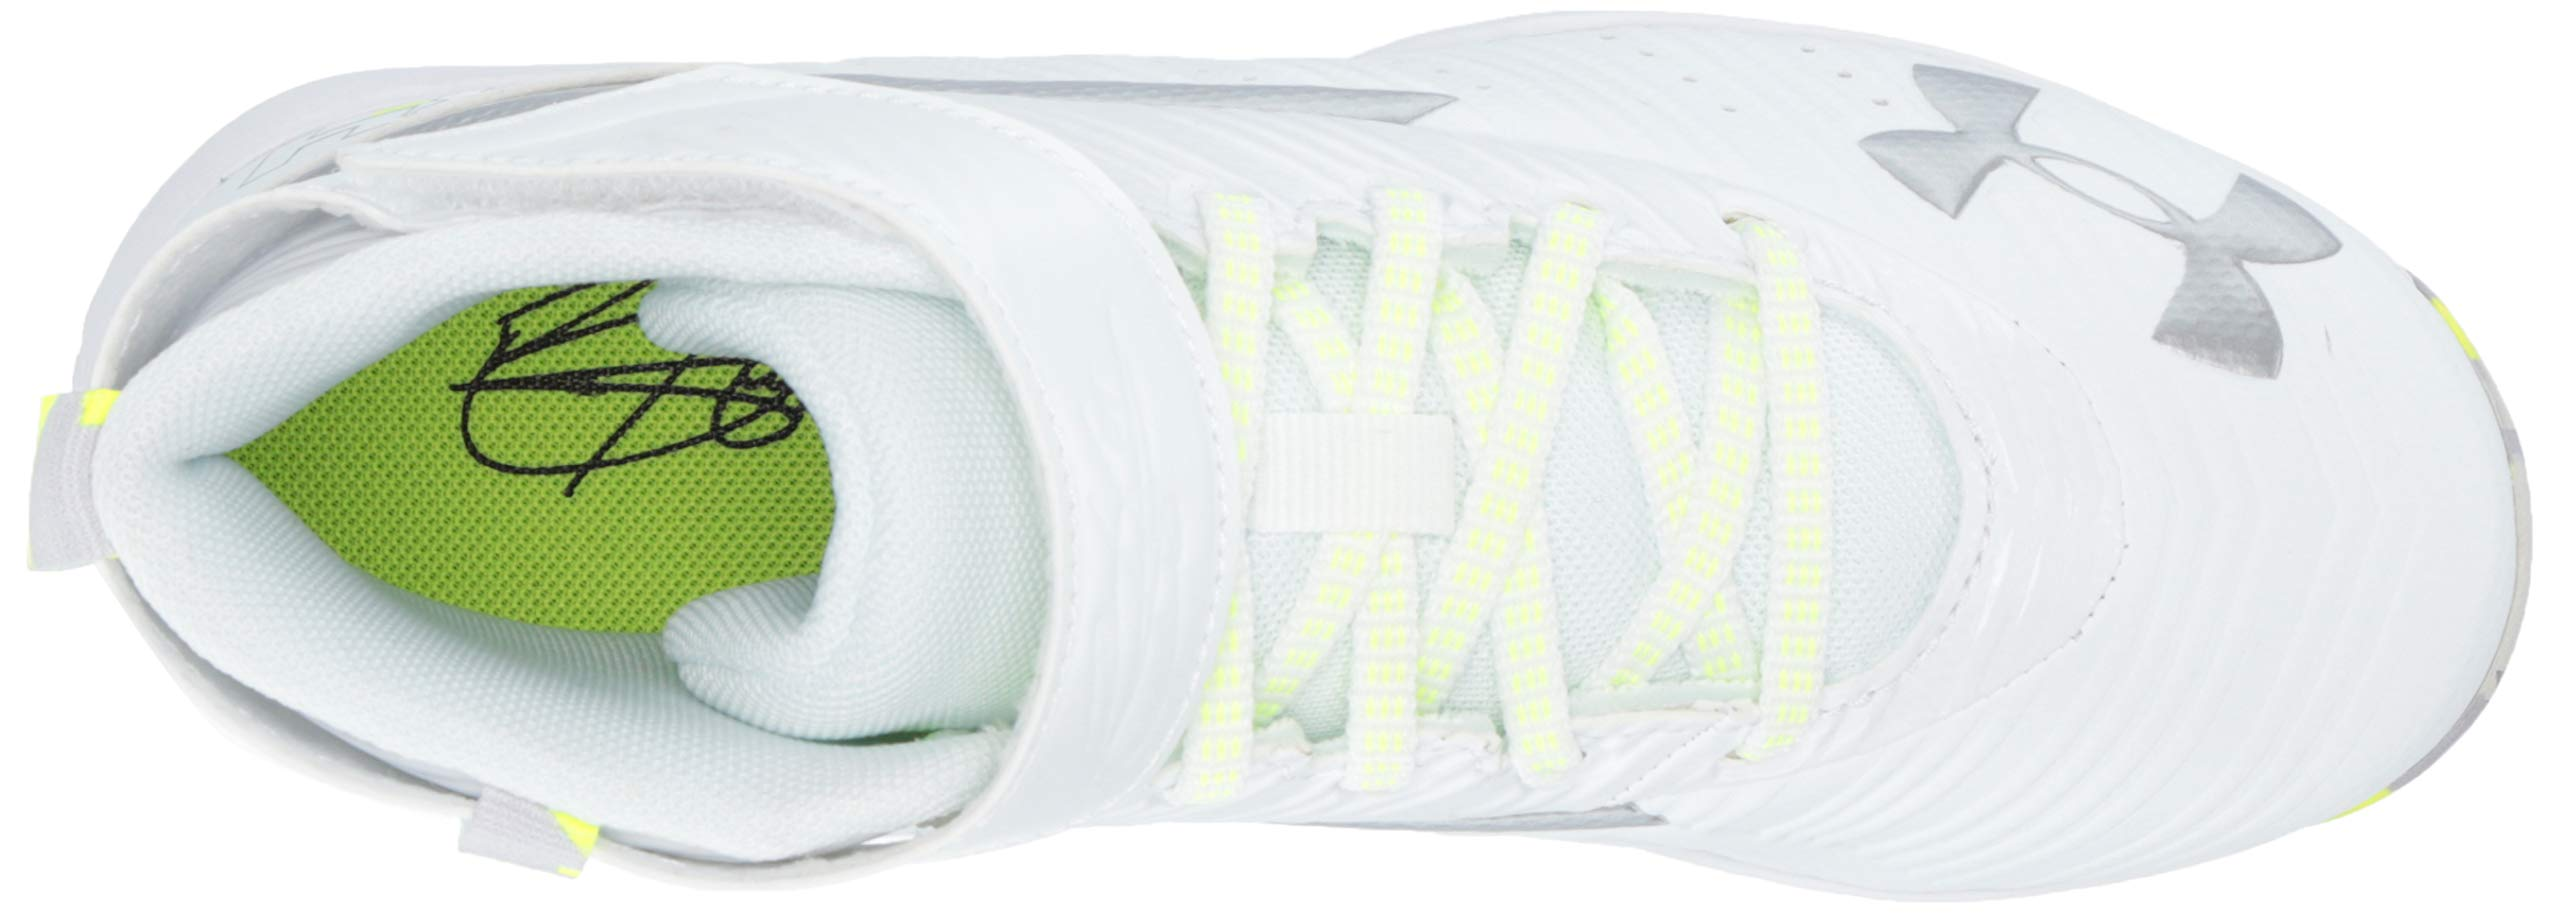 Under Armour Boys' Harper 3 Mid Jr. RM Baseball Shoe 100/White, 1 by Under Armour (Image #12)